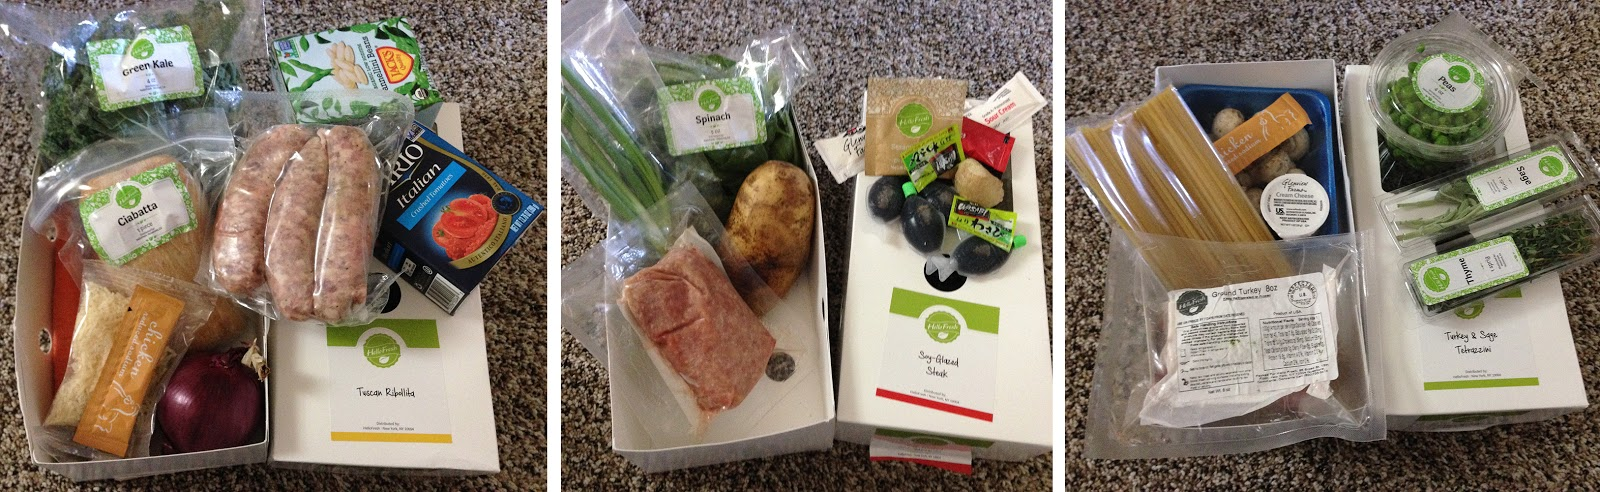 Food Hellofresh A Weekly Food Delivery Service